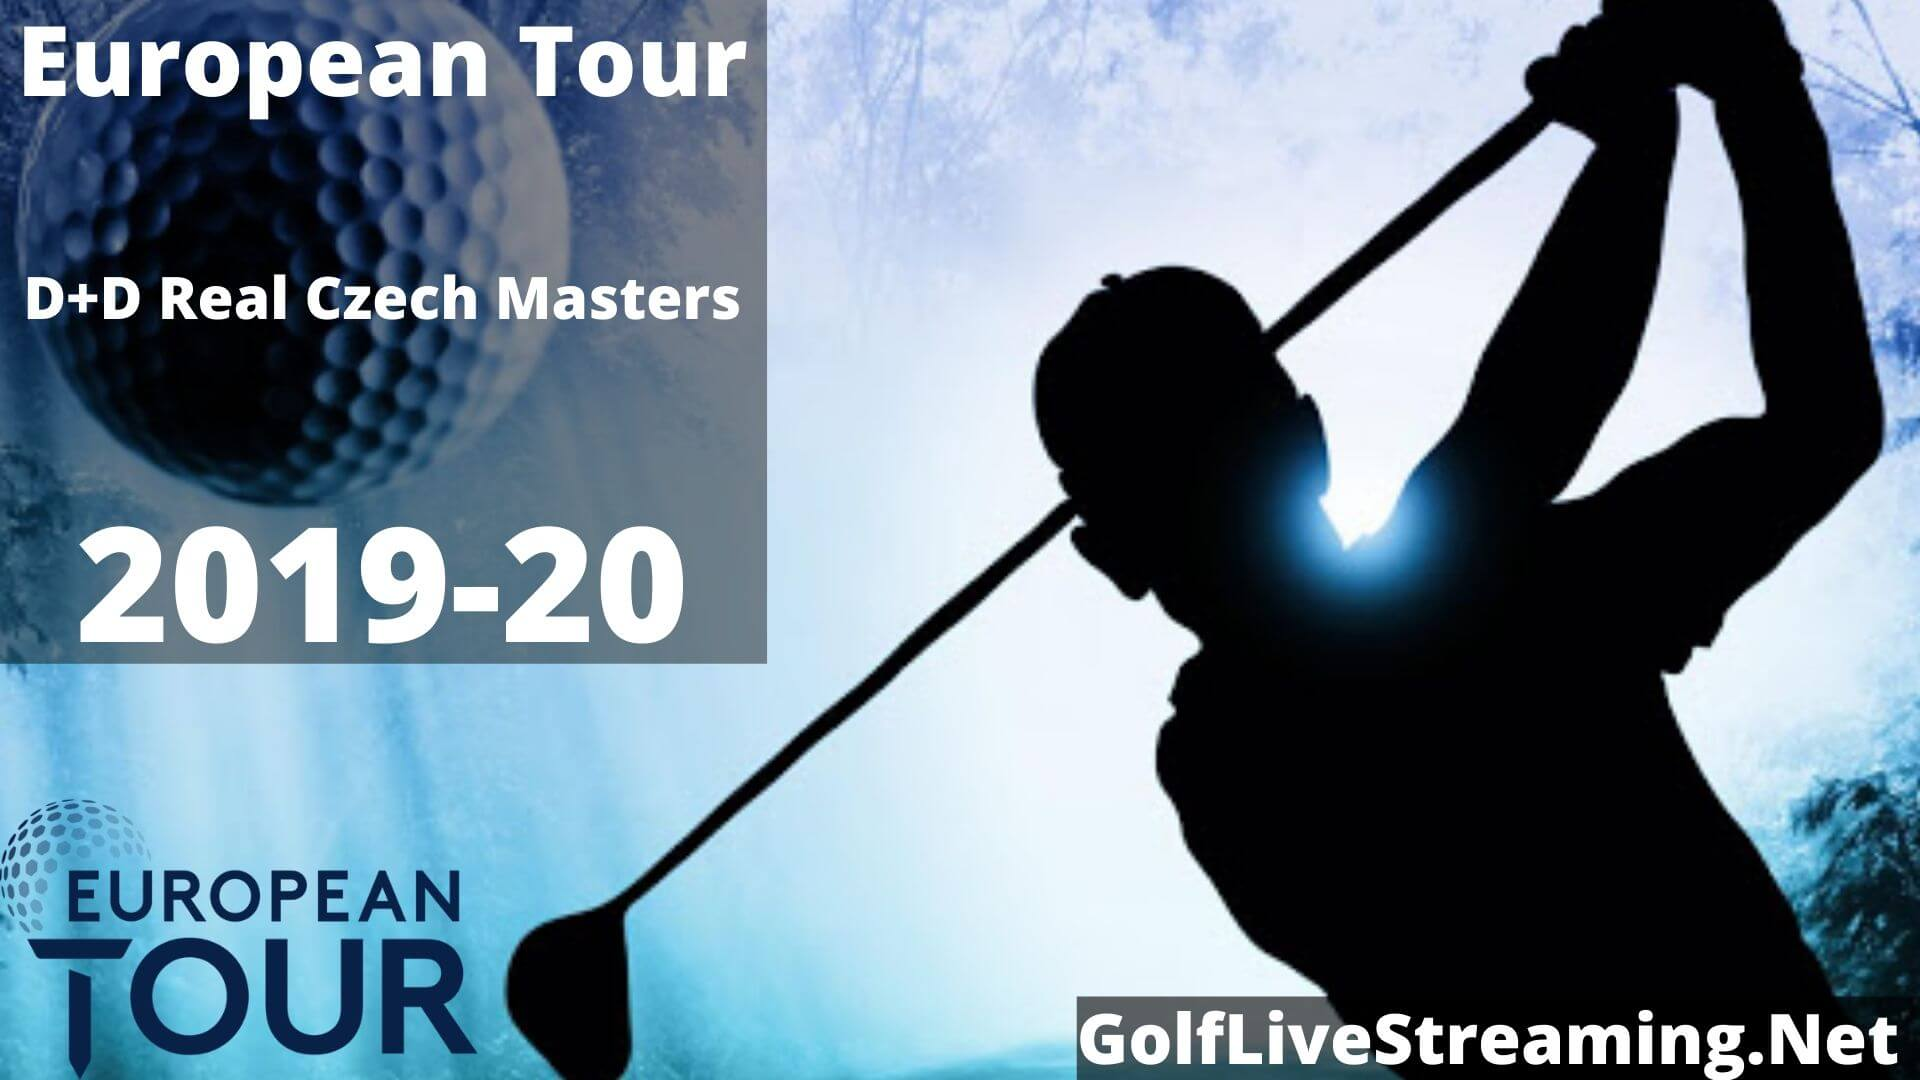 D+D Real Czech Masters Live Stream 2020 | European Tour Round 2